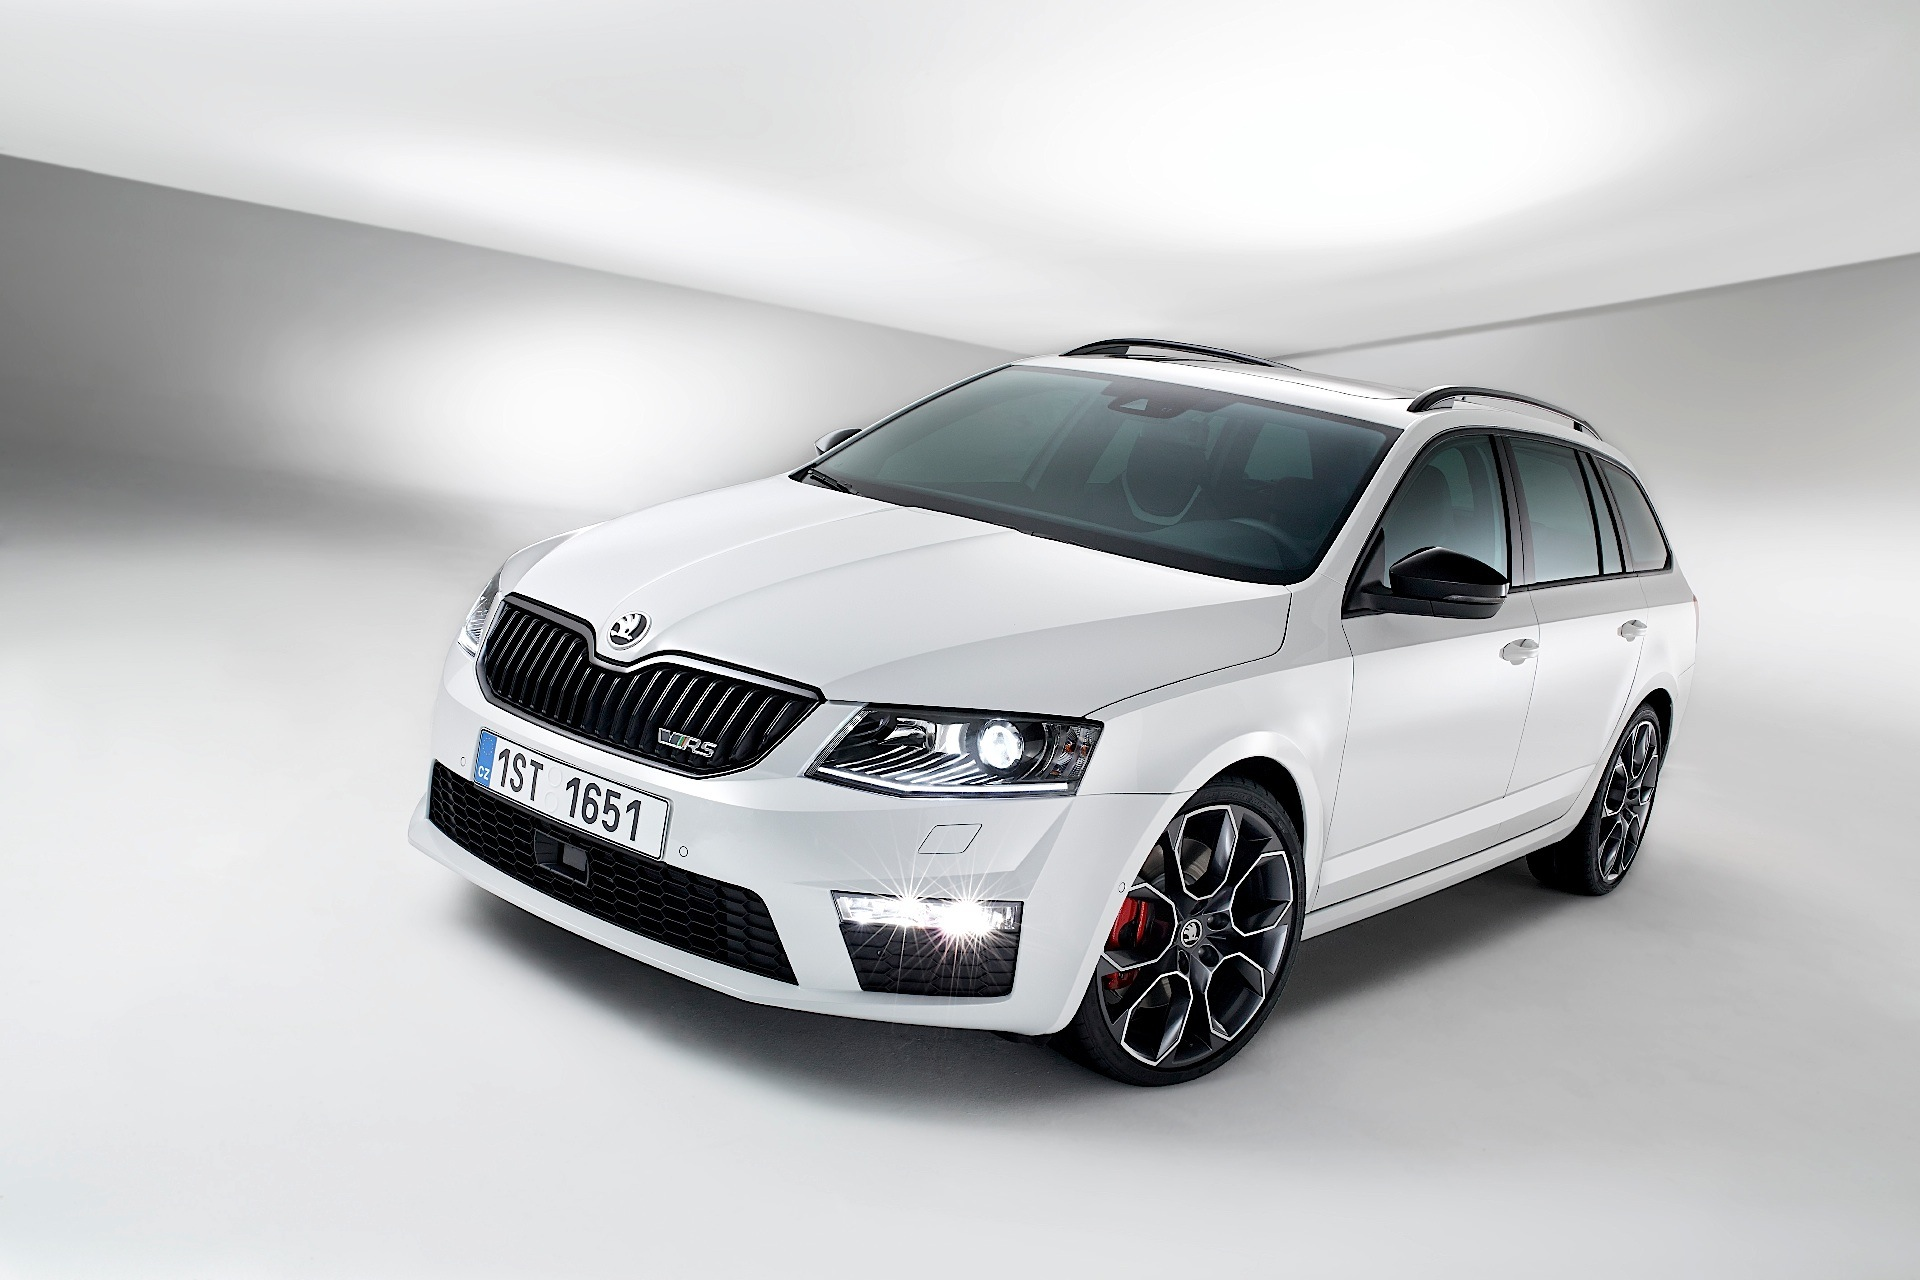 skoda octavia combi rs specs 2014 2015 2016 2017. Black Bedroom Furniture Sets. Home Design Ideas